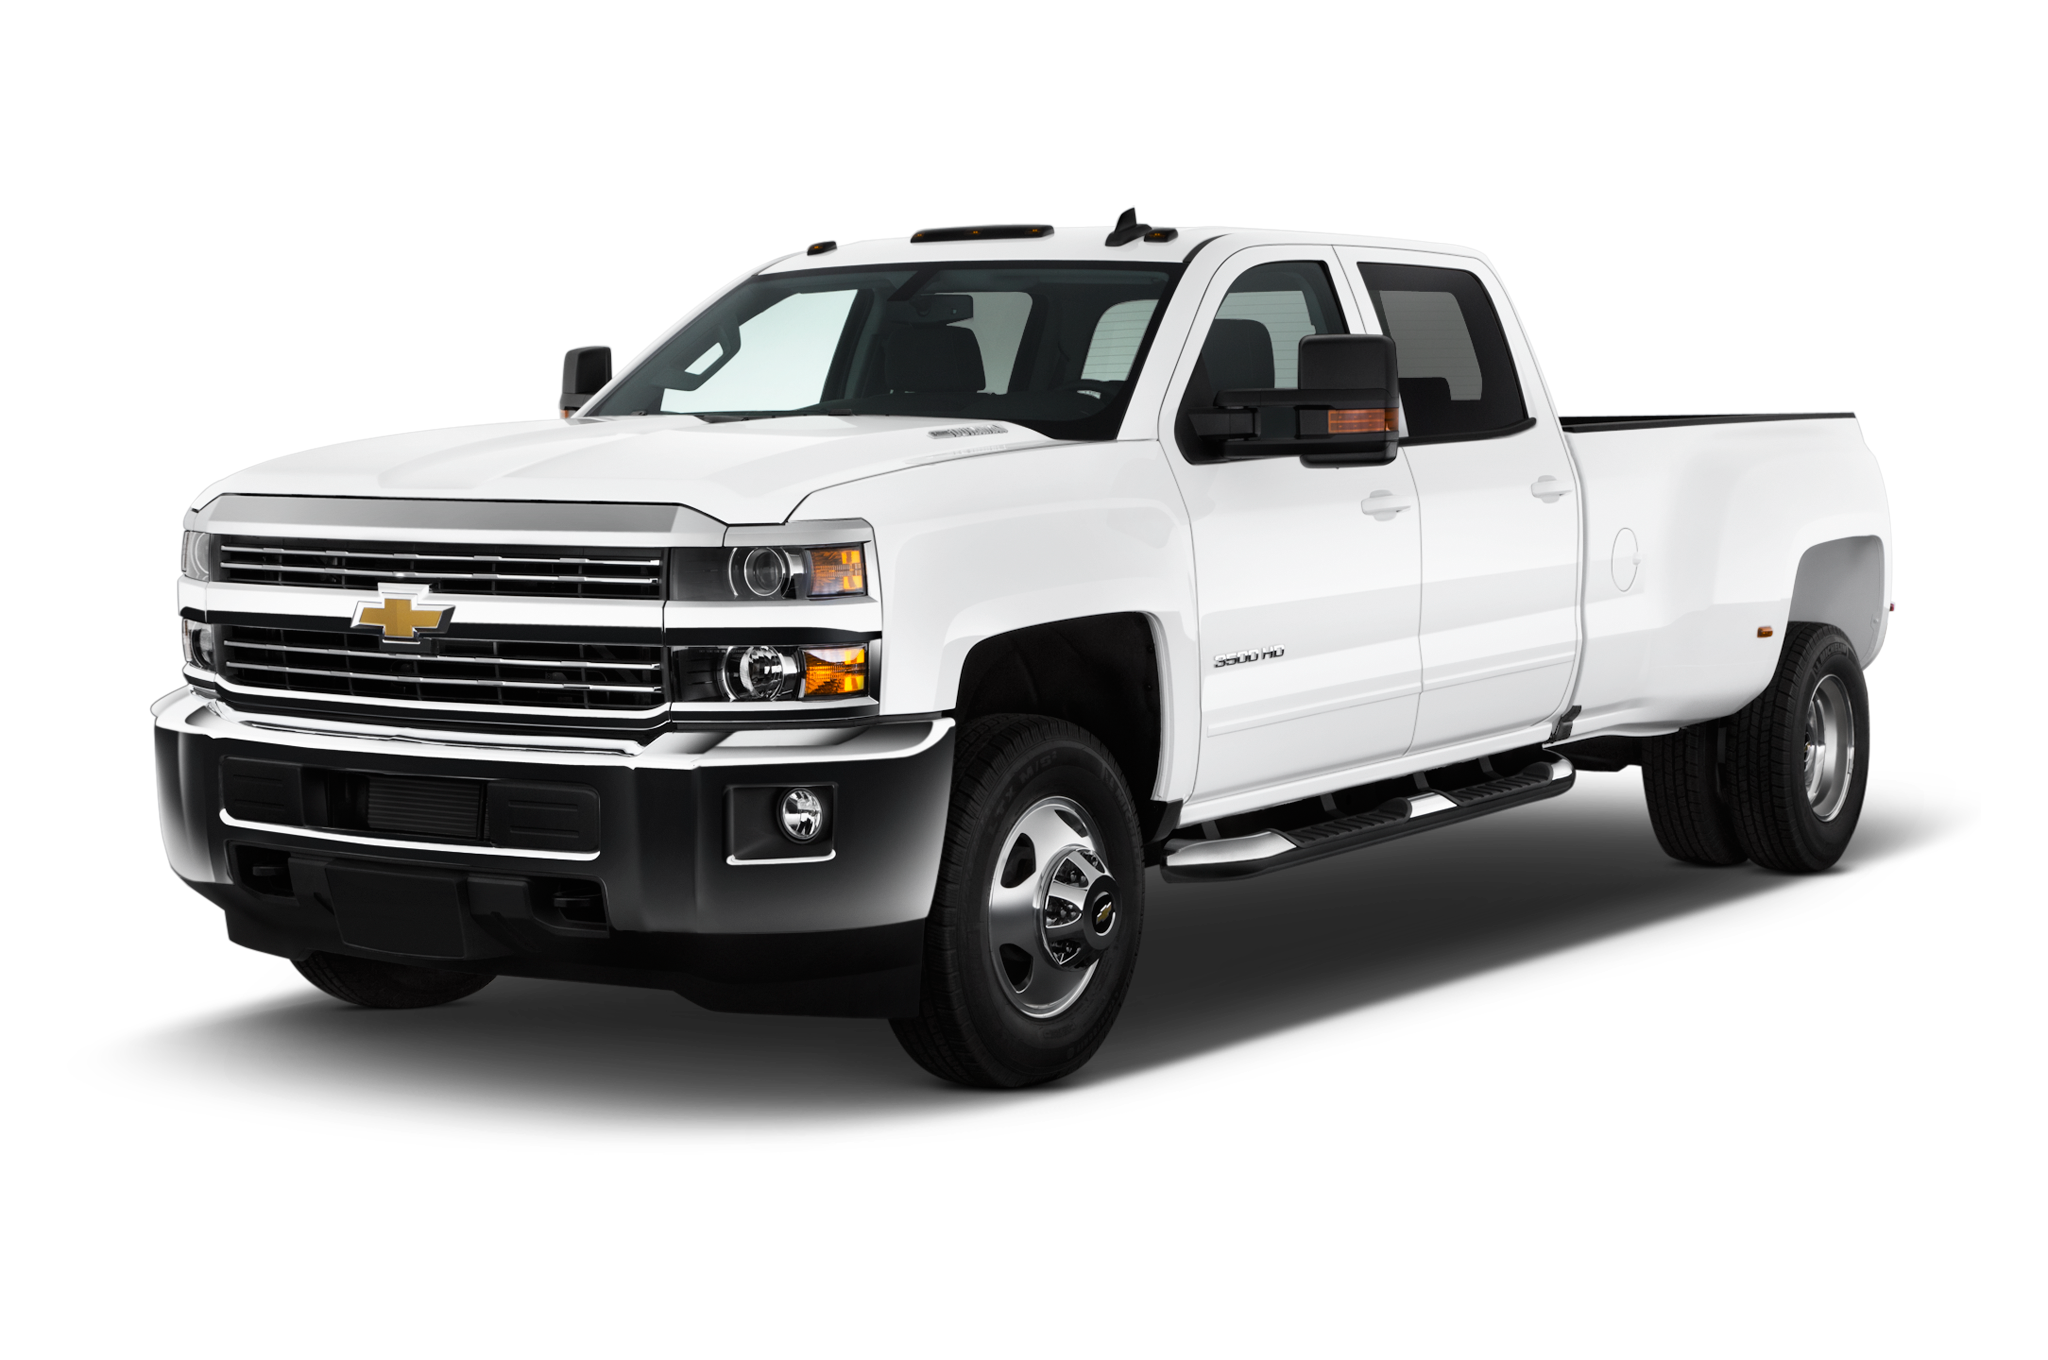 2017 chevrolet silverado 3500hd lt crew cab long box drw specs and features msn autos. Black Bedroom Furniture Sets. Home Design Ideas